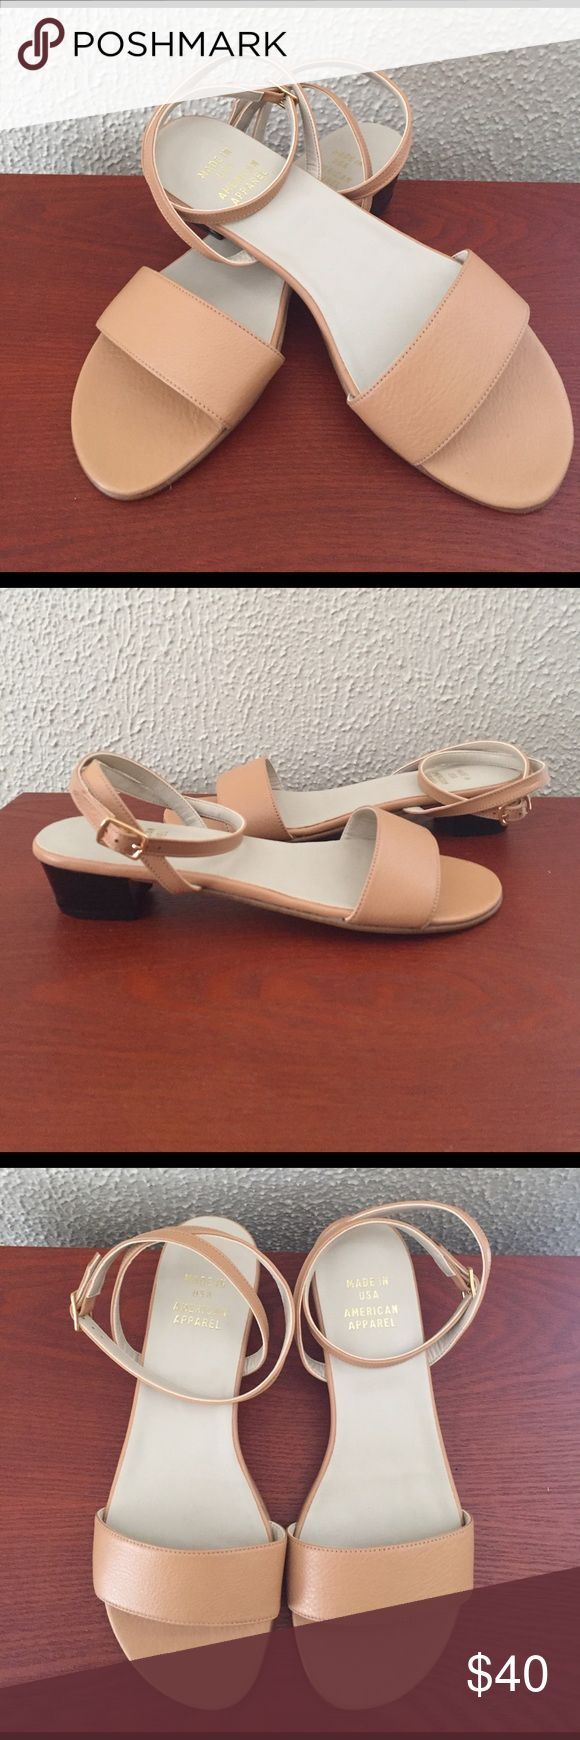 NWOT AMERICAN APPAREL Solid Step-In Sandals American Apparel Solid Step-In Sandals NWOT Brand New! With Box! 1inch block heel Size 6 American Apparel no longer sells shoes and are going out of business. Get these while you can!! American Apparel Shoes Sandals